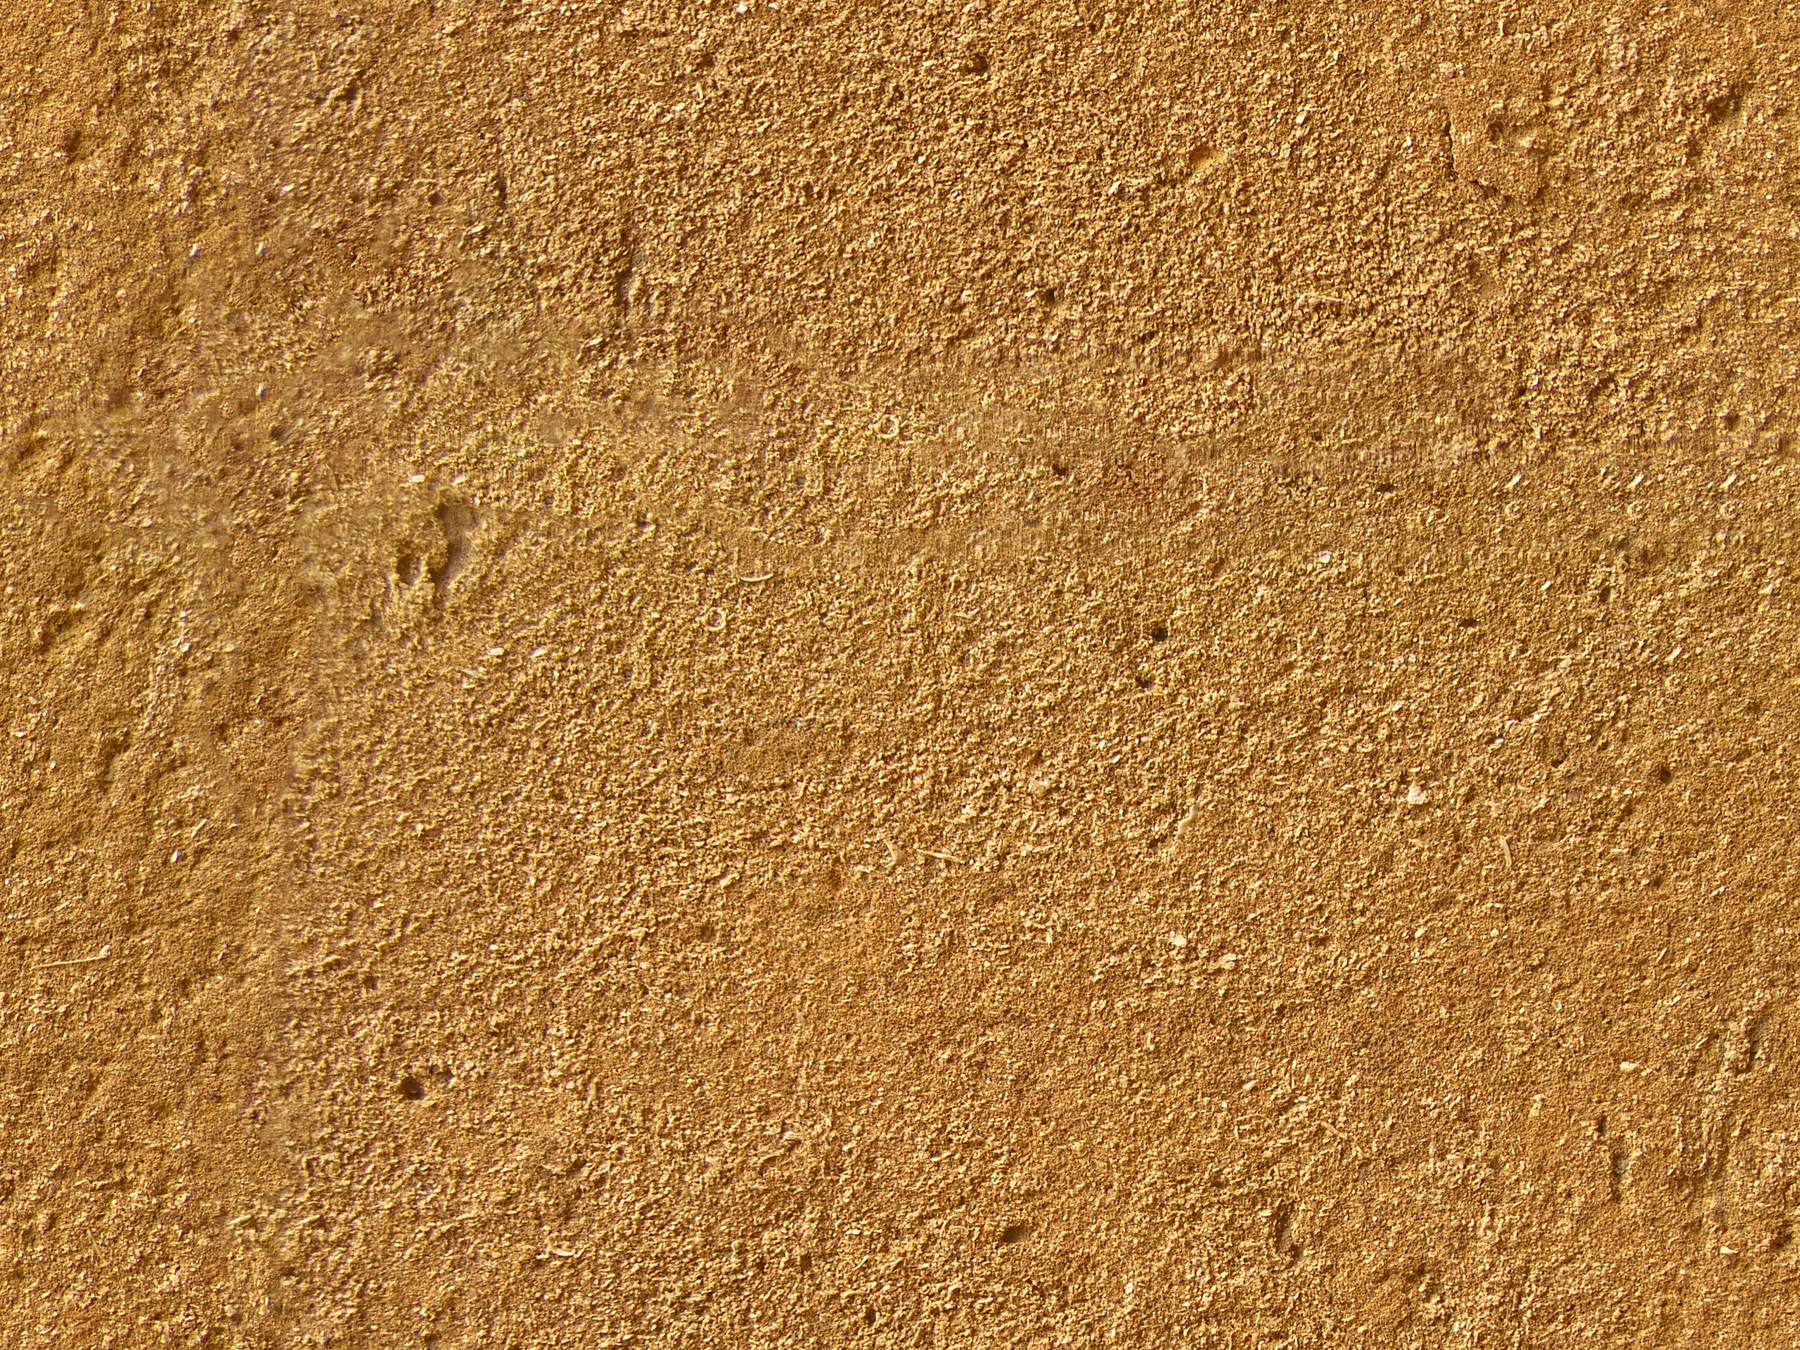 texture, sand, texture sand, beach, background, background.